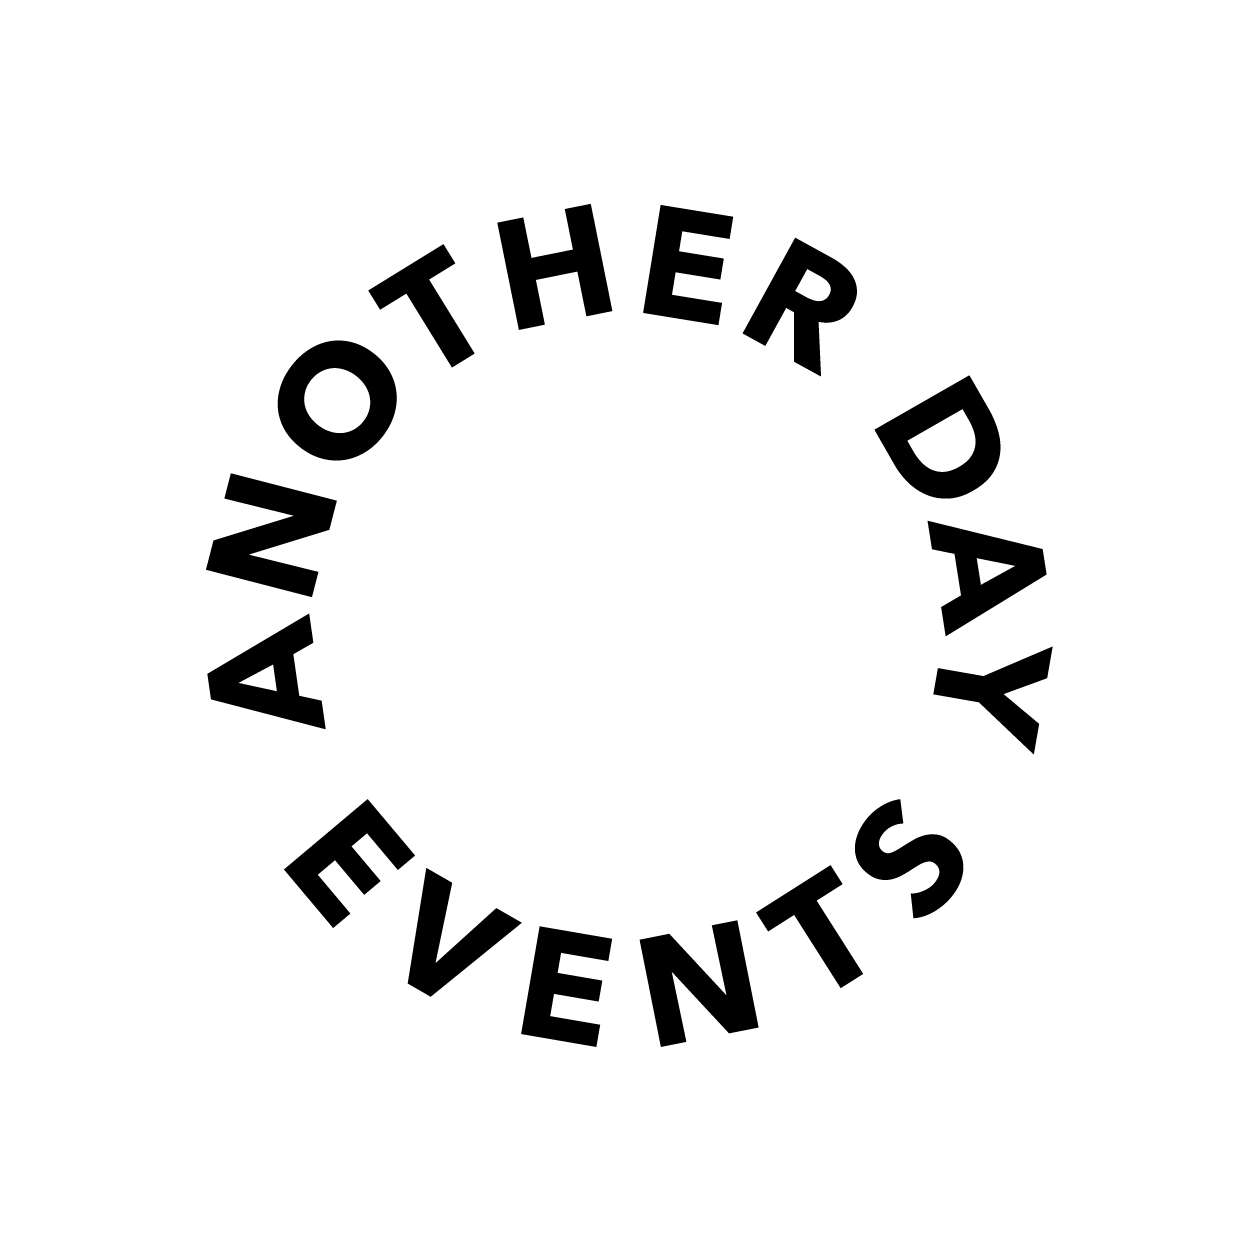 Another_Day_Logo_Black